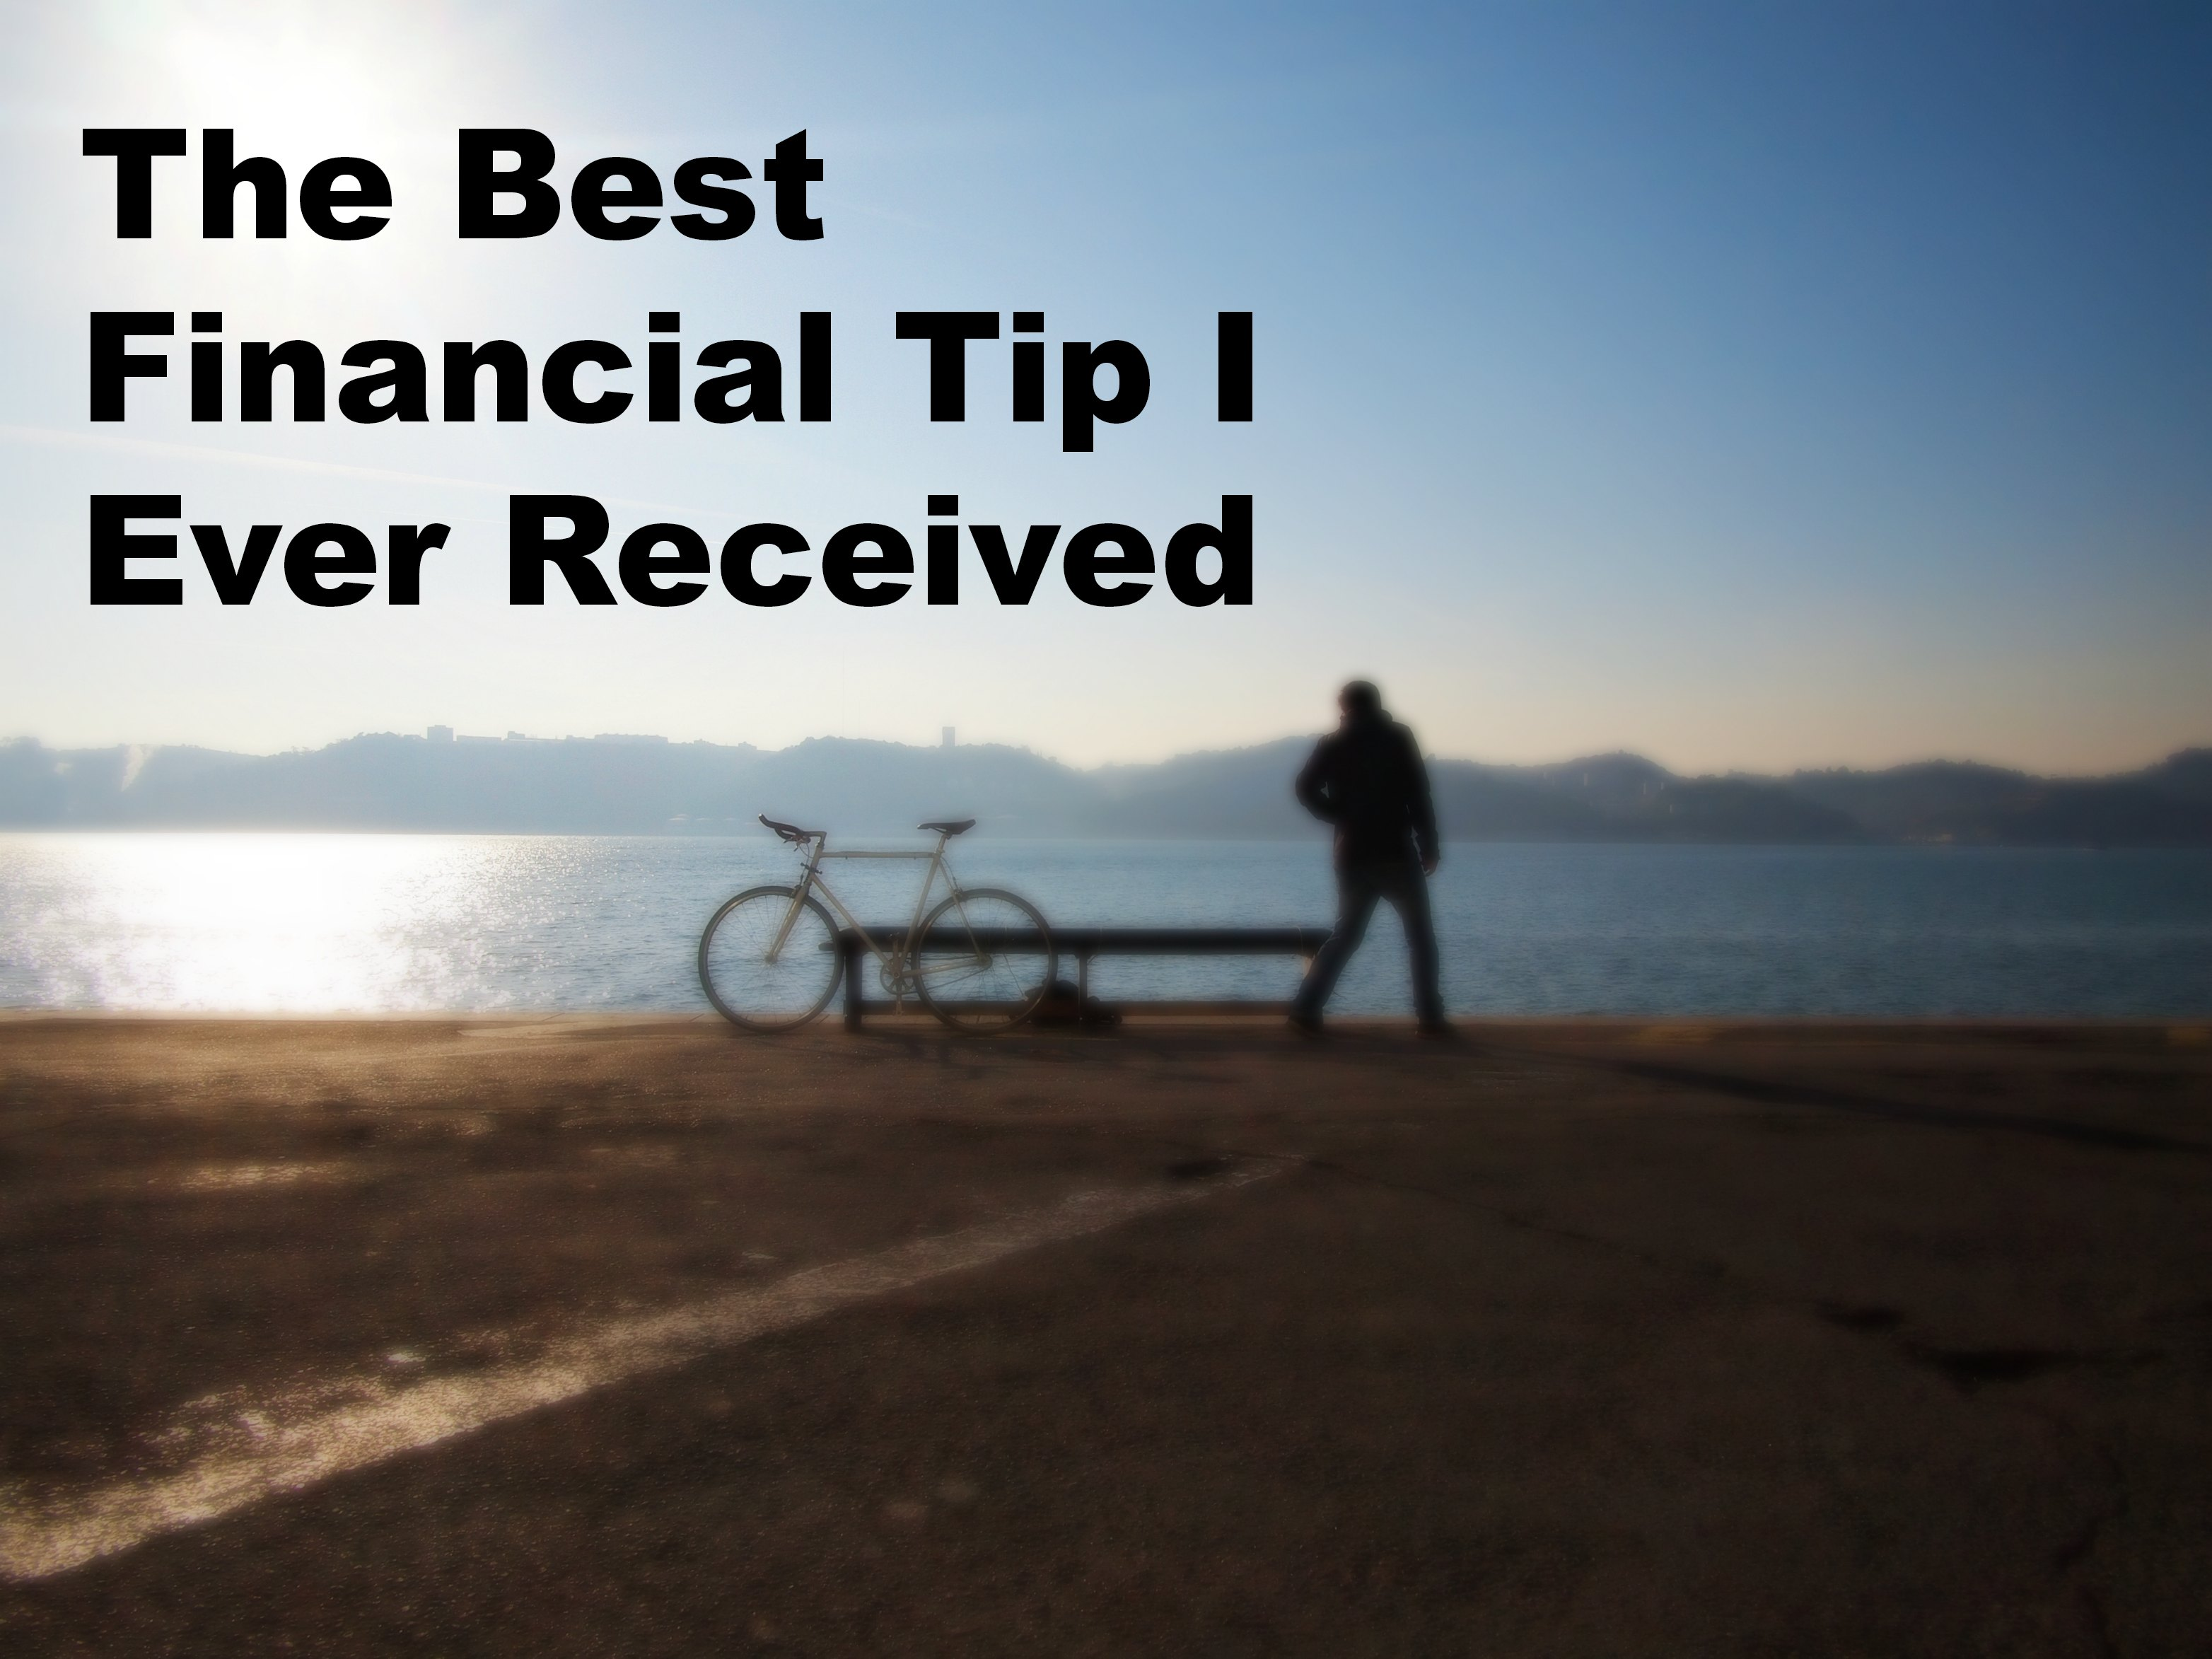 What is the best financial tip I ever received